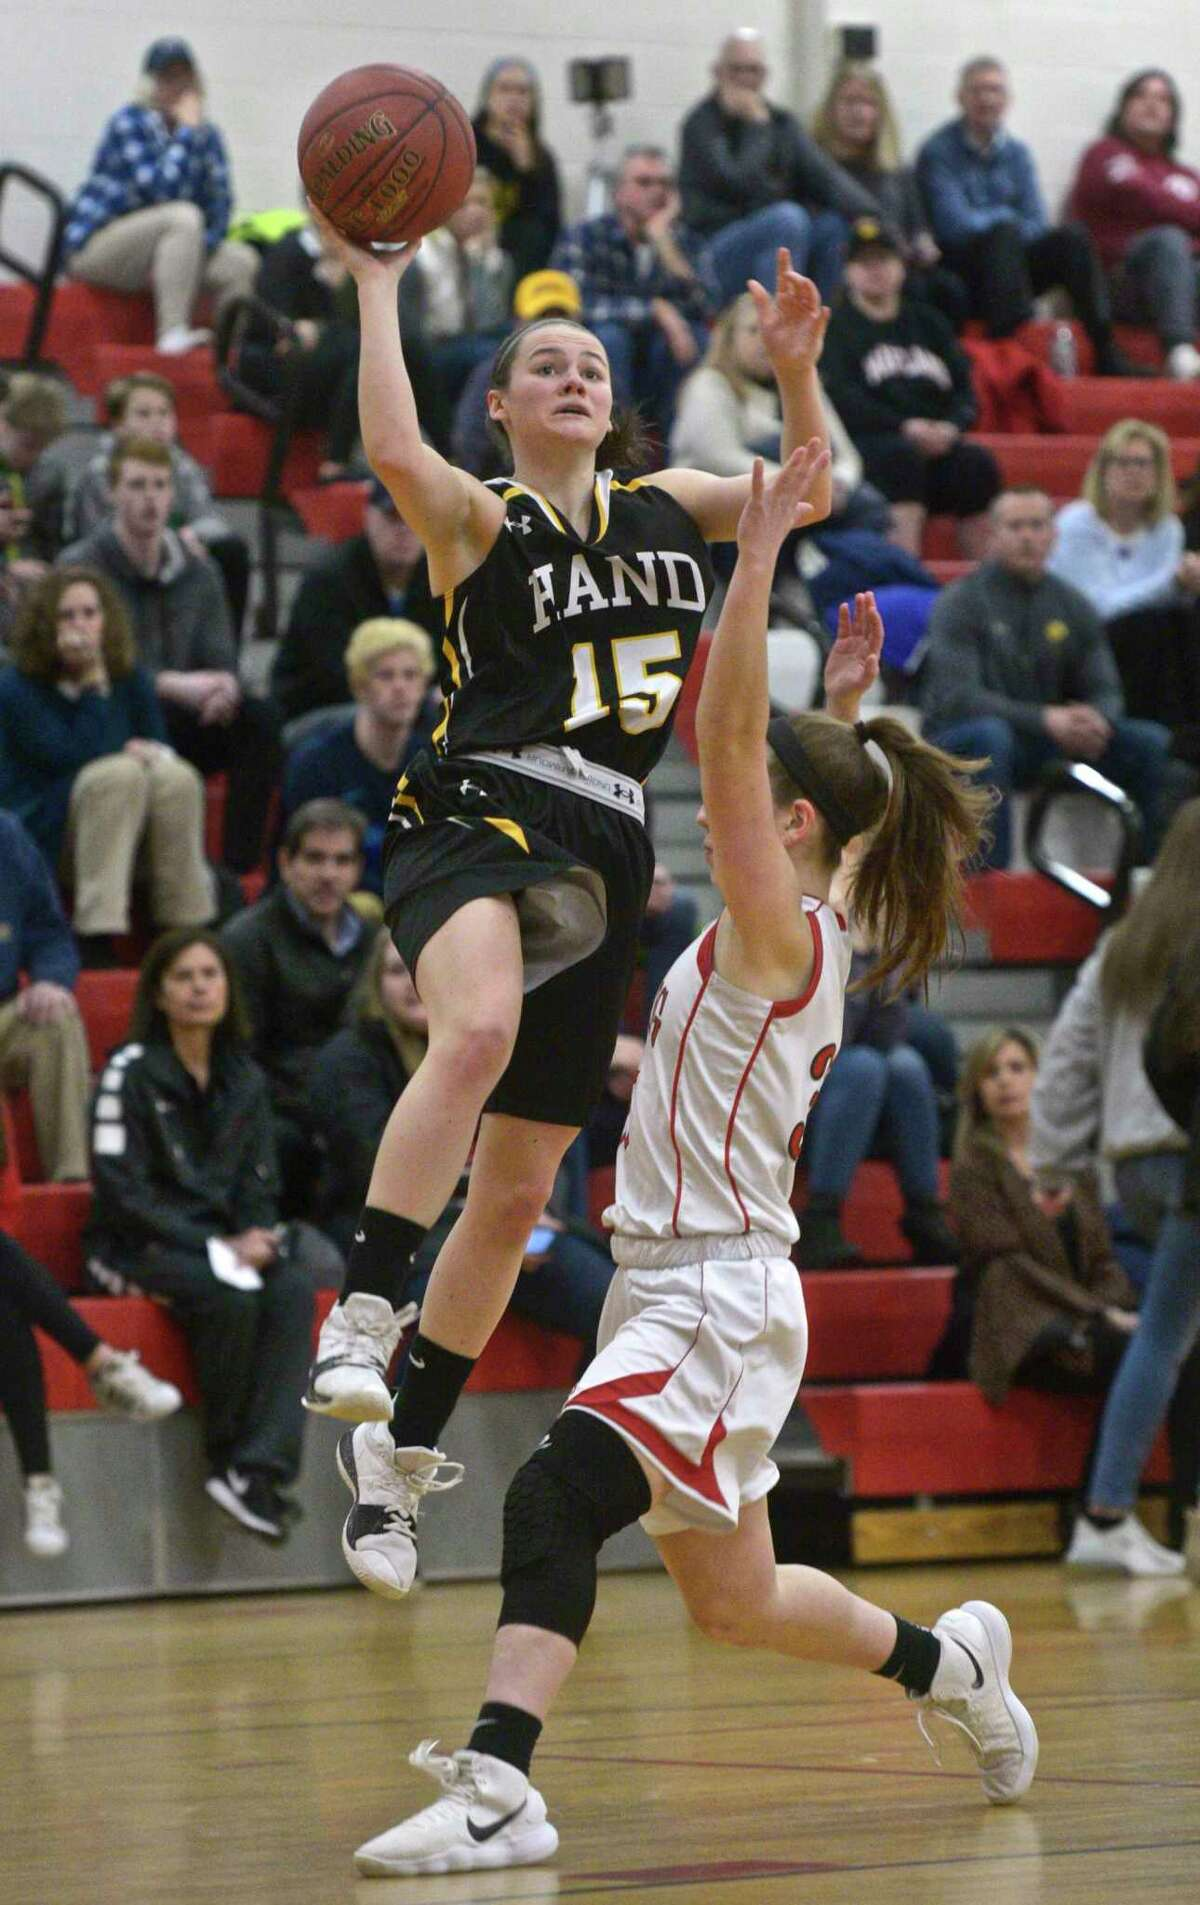 Hand's Sara Wohlgemuth (15) takes a one handed shot over Pomperaug's Madison Villa (35) in the CIAC Class L girls basketball game last season. Wohlgemuth had 45 points in two games during the Appalachia Tournament.